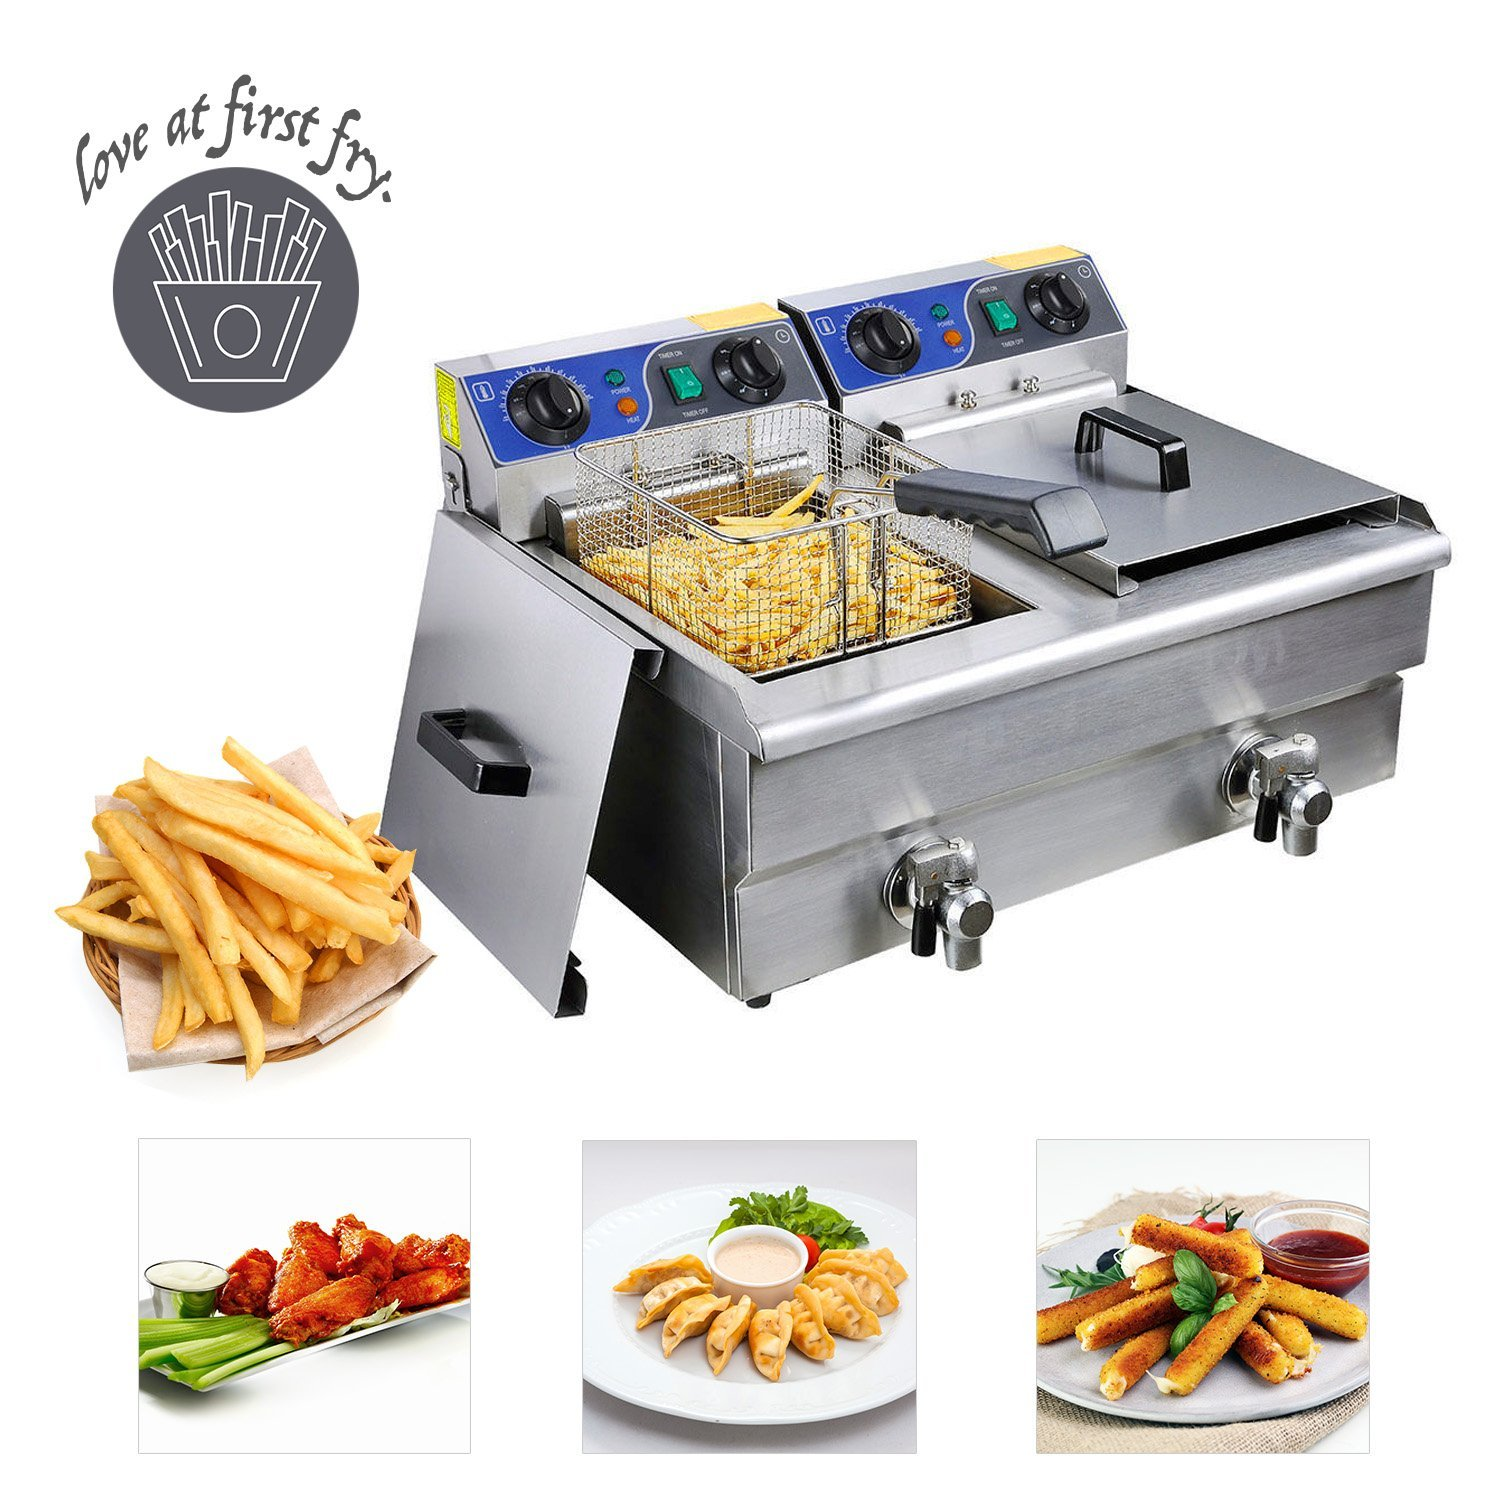 Koval Inc. Stainless Steel Commercial Electric Deep Fat F...